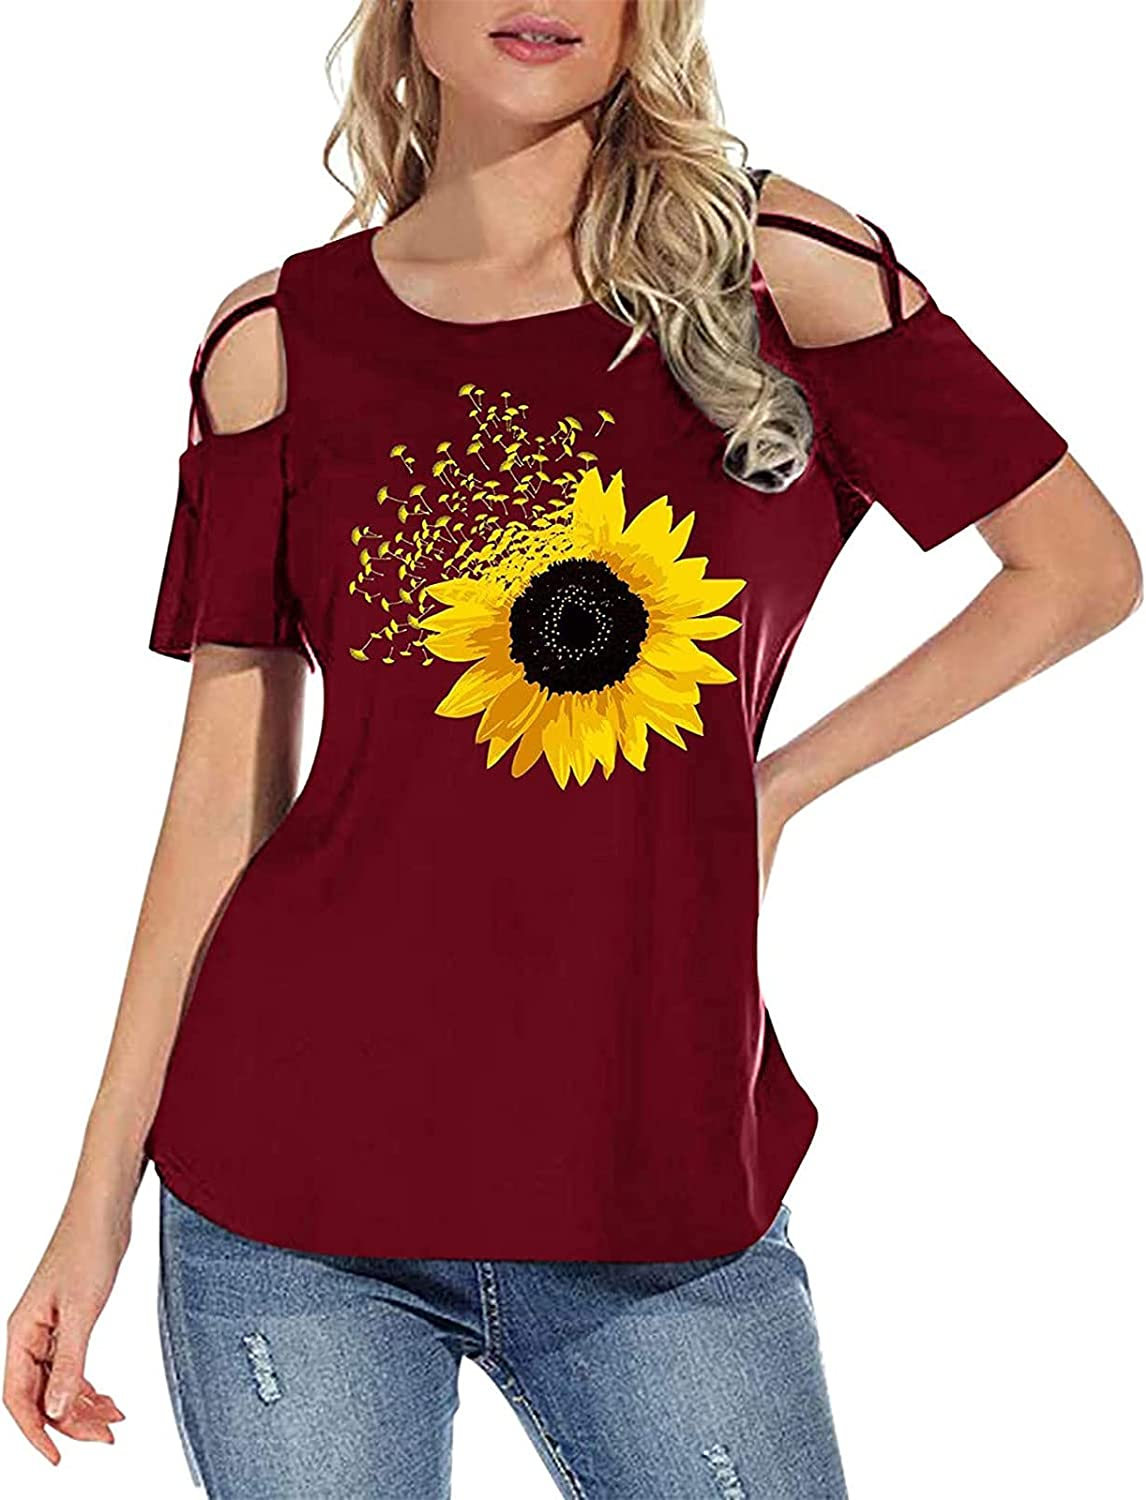 Anu Linen Women's Strappy Cold Shoulder Tunic,Floral Printing Short Sleeve Tops Summer Causal Boho Tunic Tops for Women